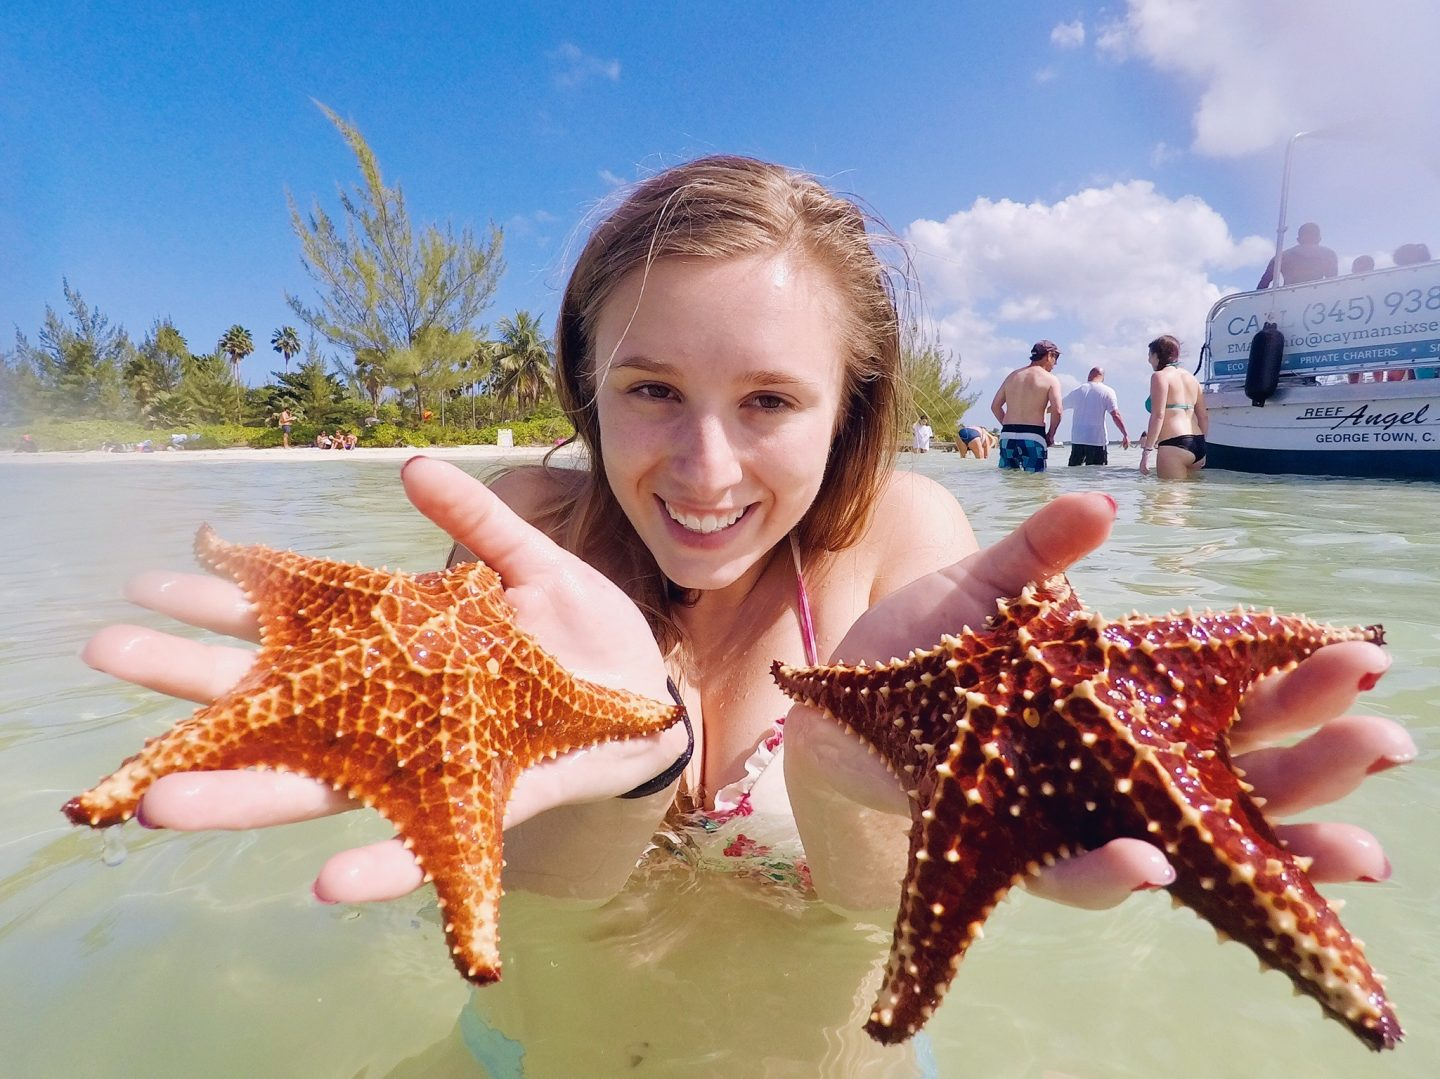 Posing with two starfish at Starfish Point in the Cayman Islands!